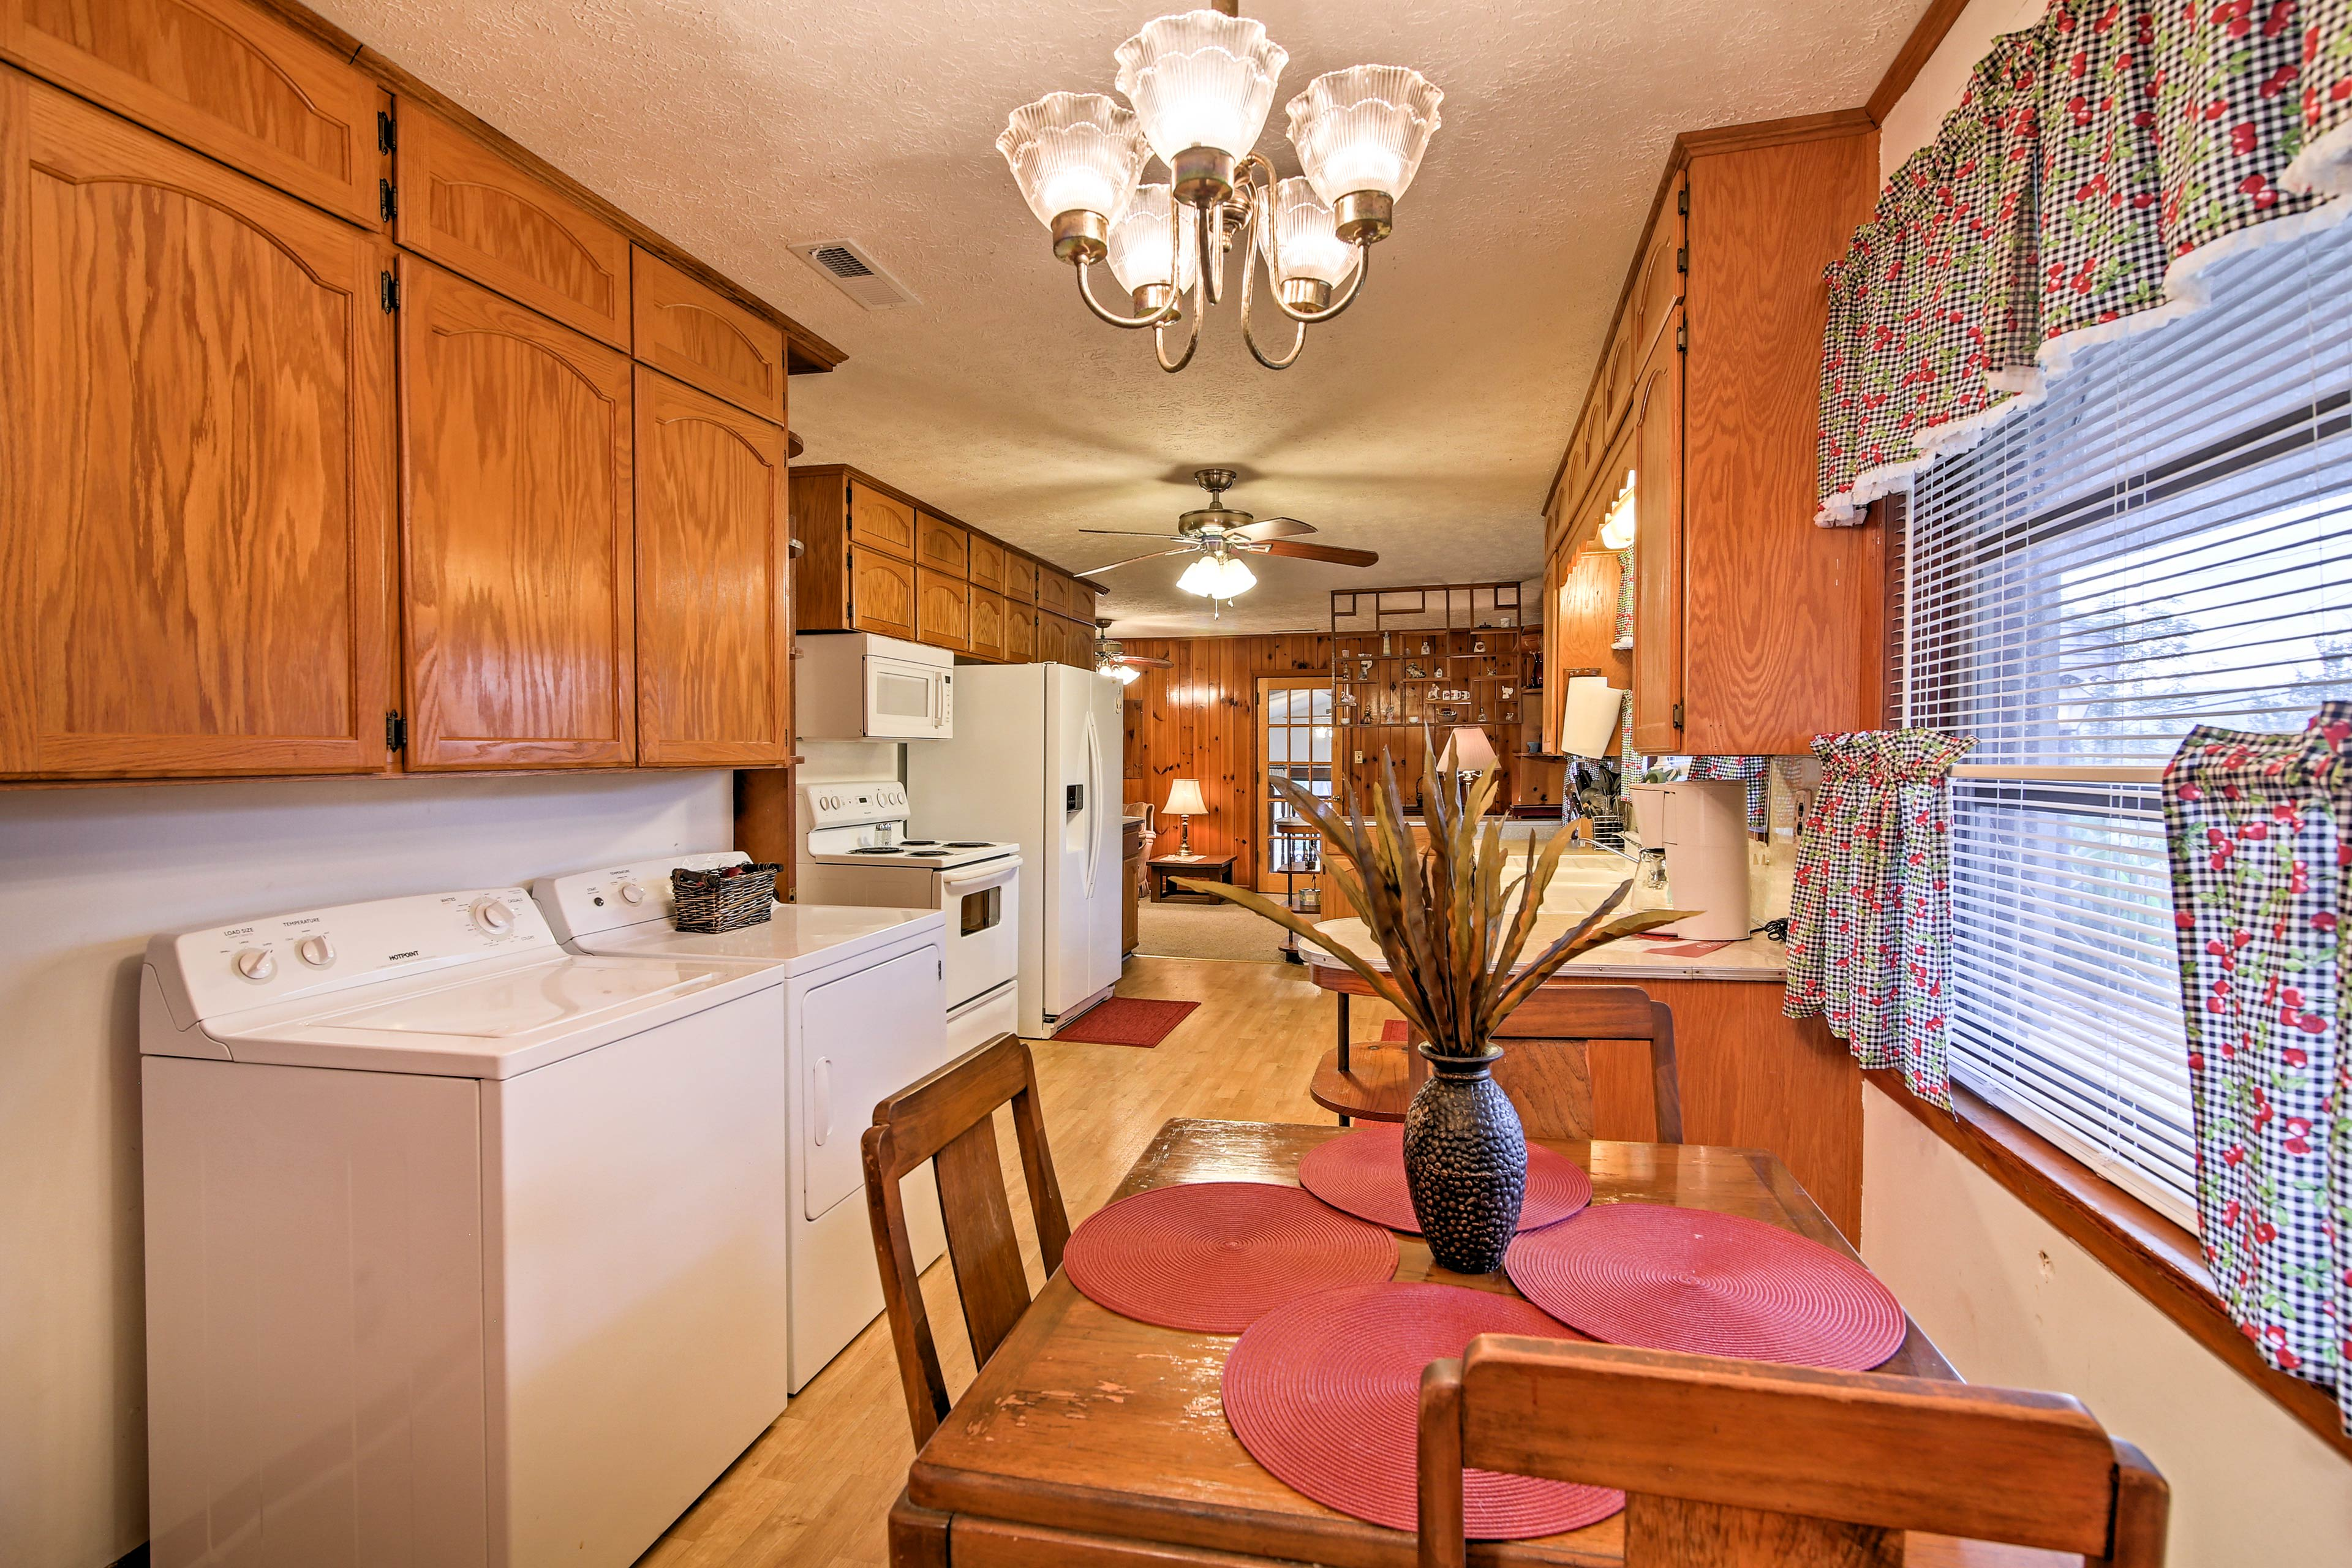 A 3-person kitchen table rests beside the washer and dryer.